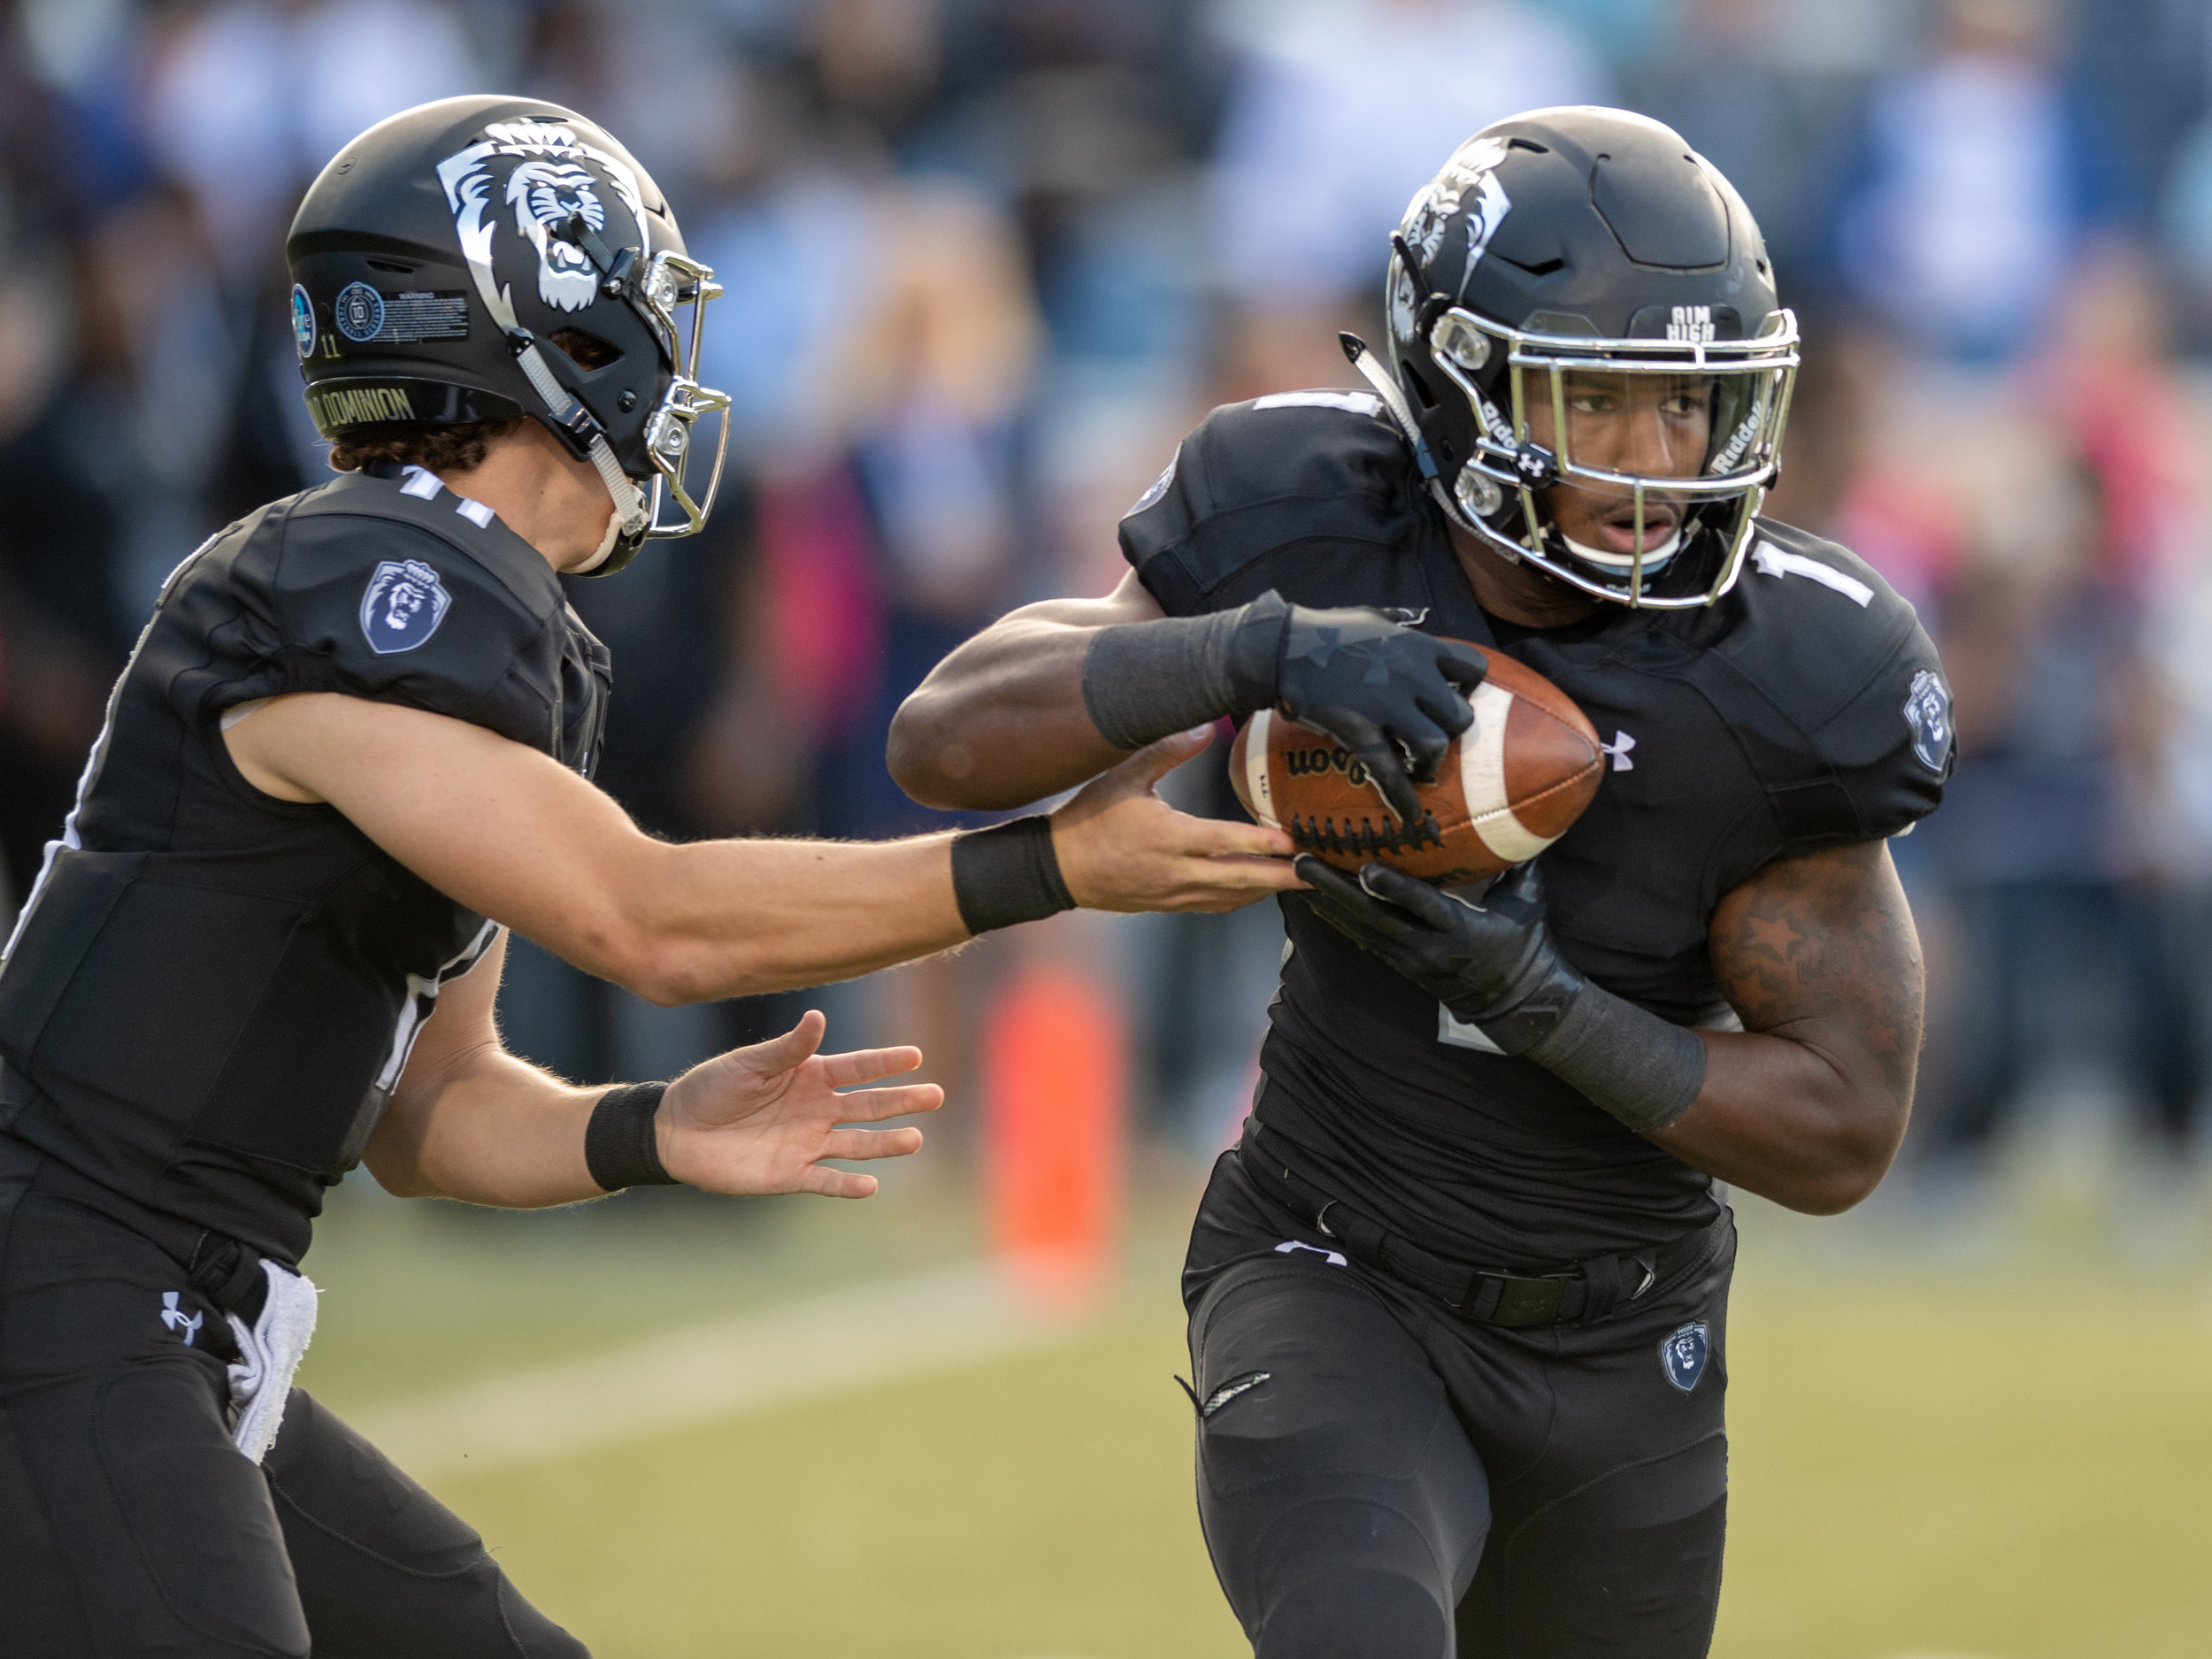 Old Dominion Monarchs running back Kesean Strong (1) takes a handoff from quarterback Blake LaRussa (11) during the Saturday, Oct. 13, 2018 game against the Marshall Thundering Herd held at Old Dominion University in Norfolk, Virginia. Marshall leads Old Dominion 14 to 3 at halftime.